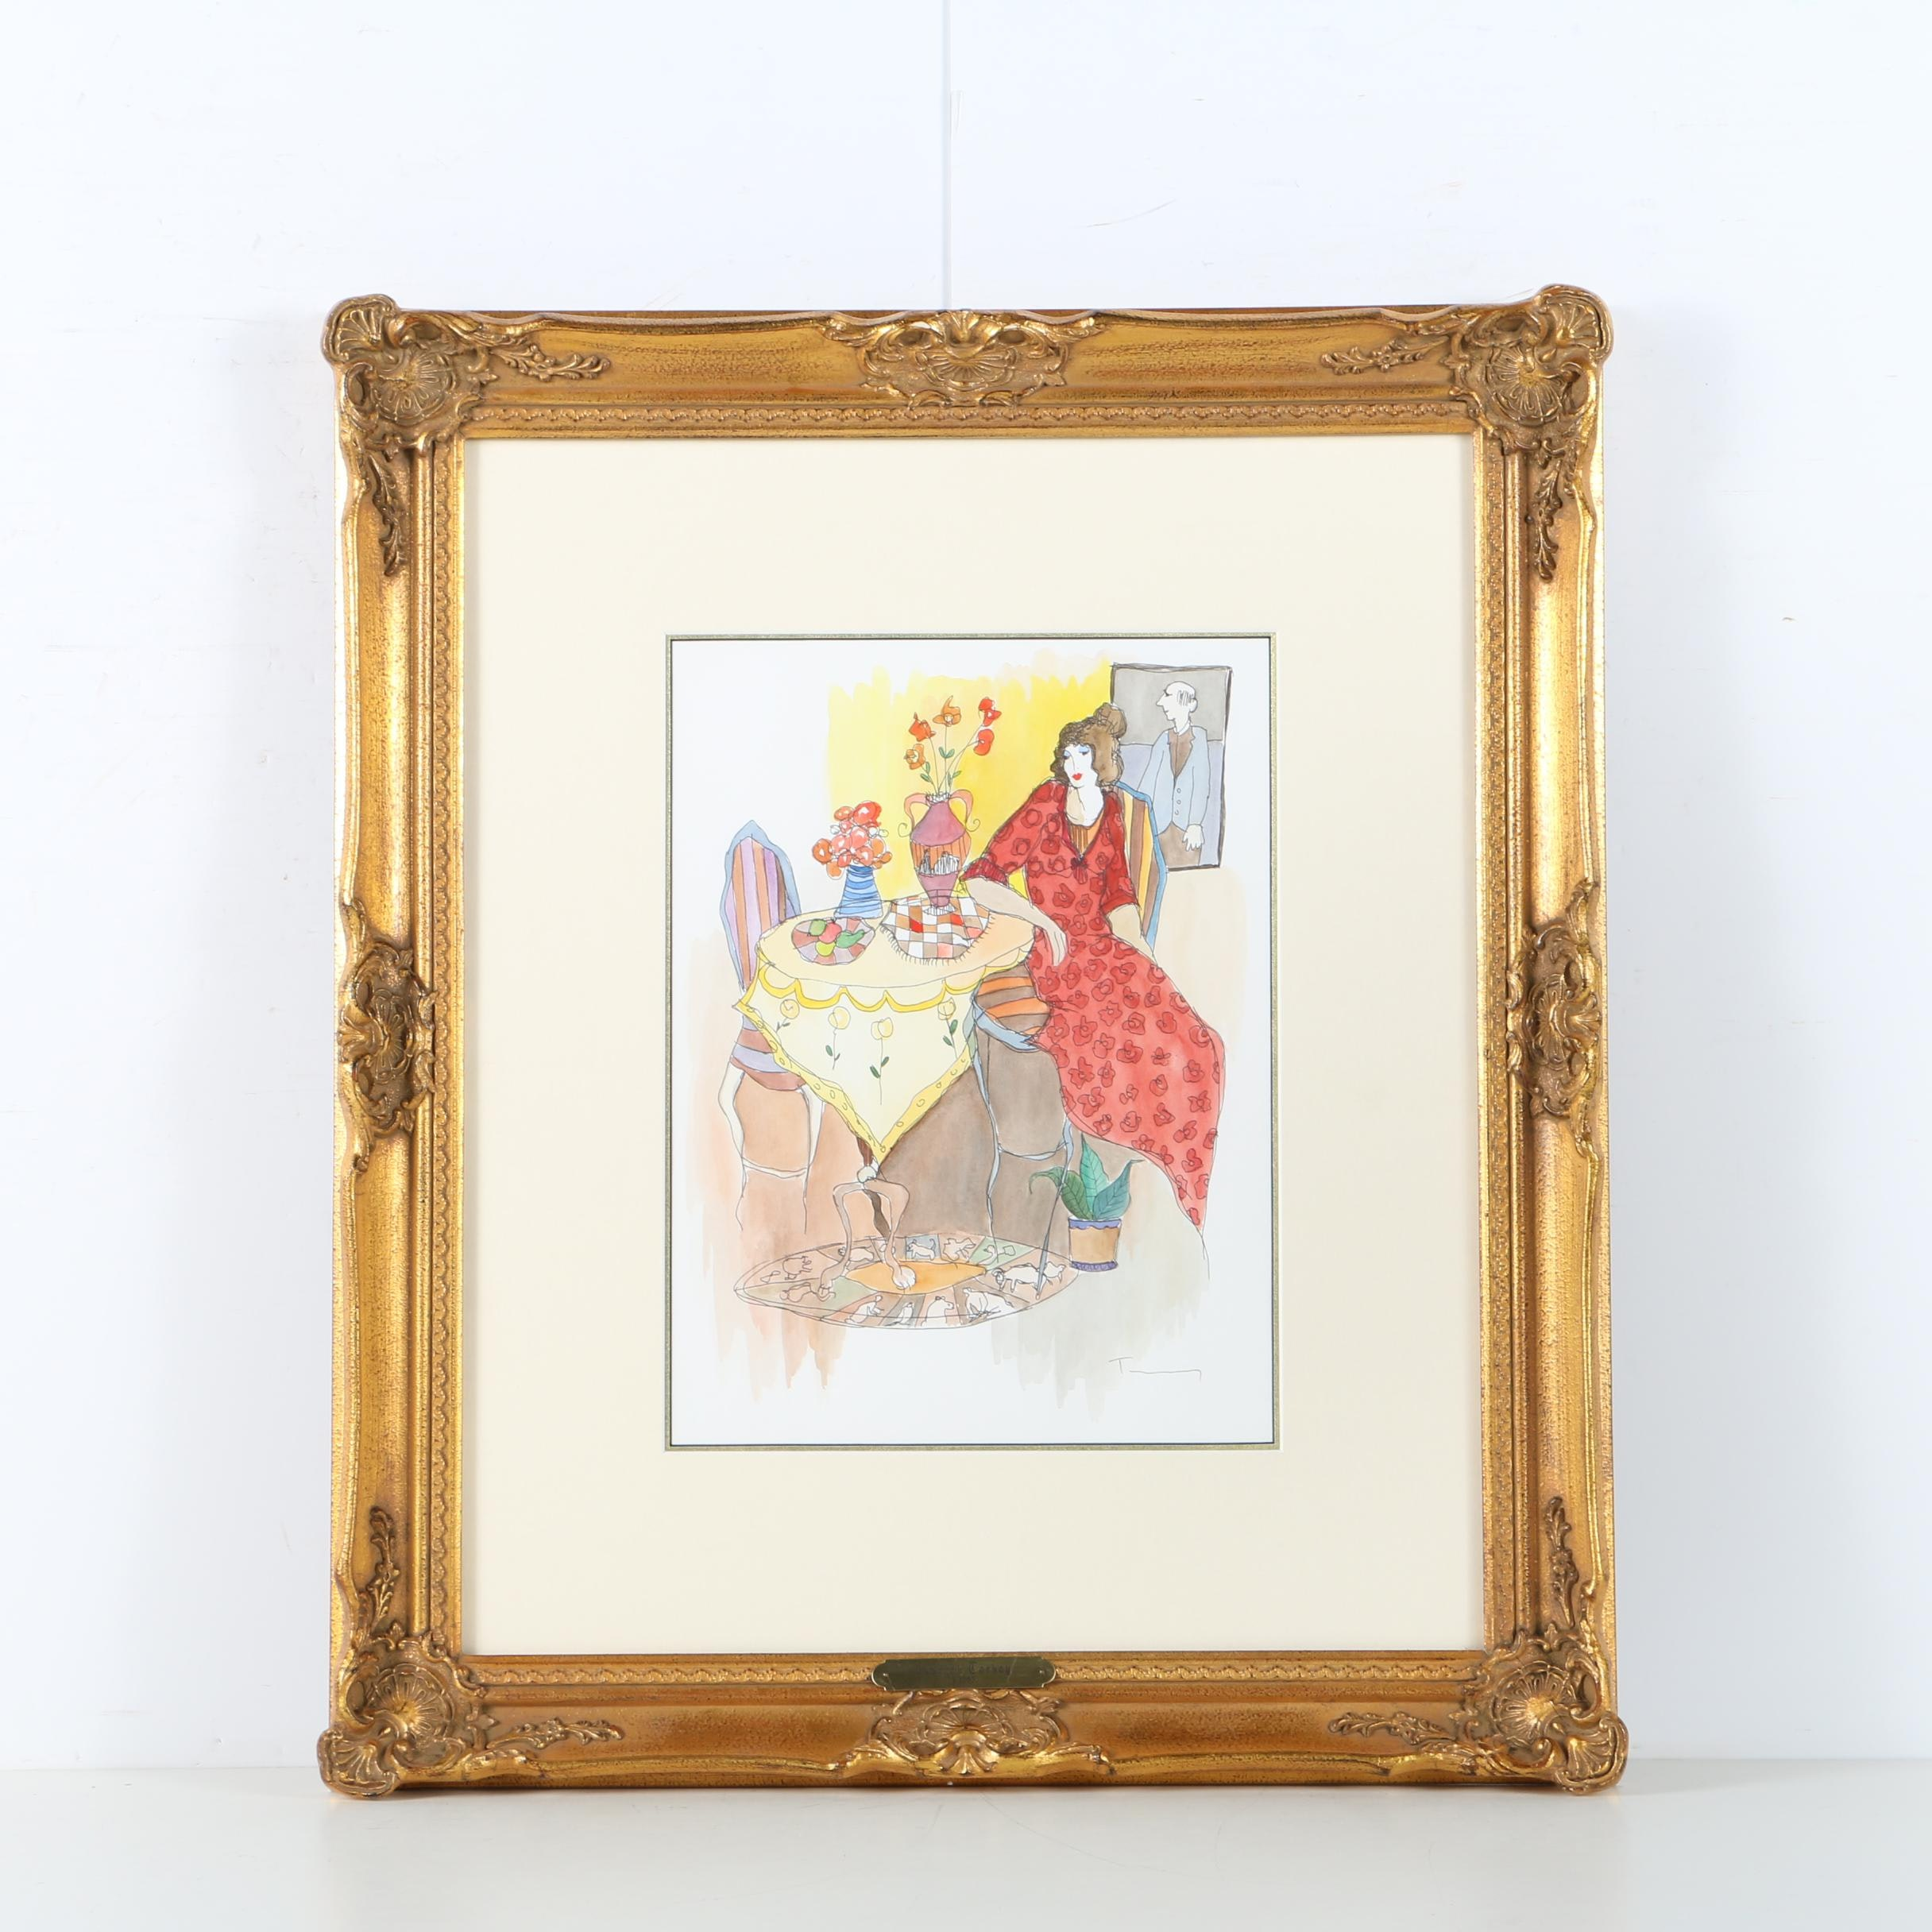 Itzchak Tarkay Lithograph Print with Watercolor Embellishments